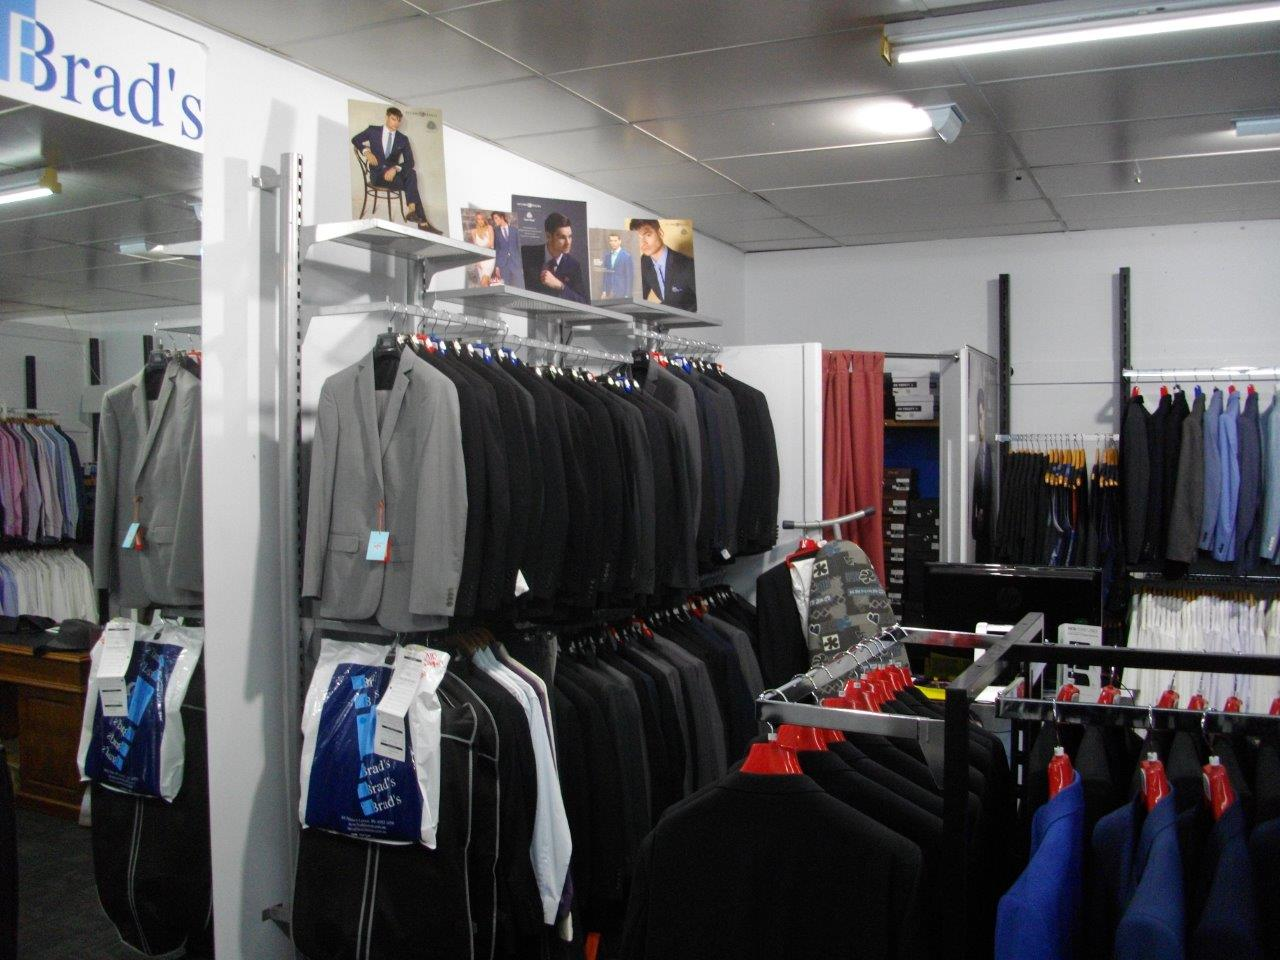 busy-retail-clothing-store-secure-a-great-financial-future-2